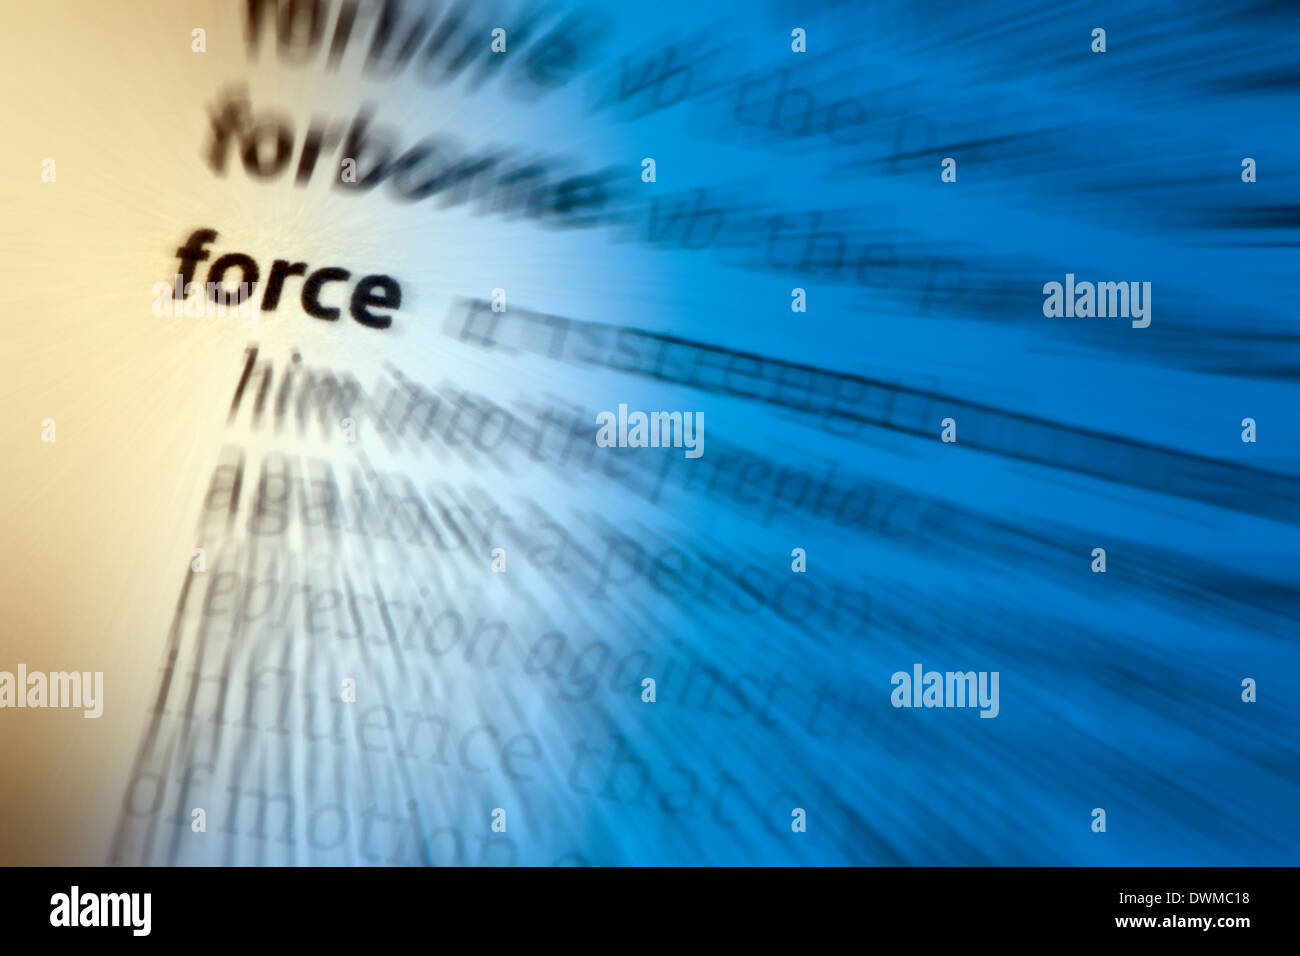 Force - Stock Image